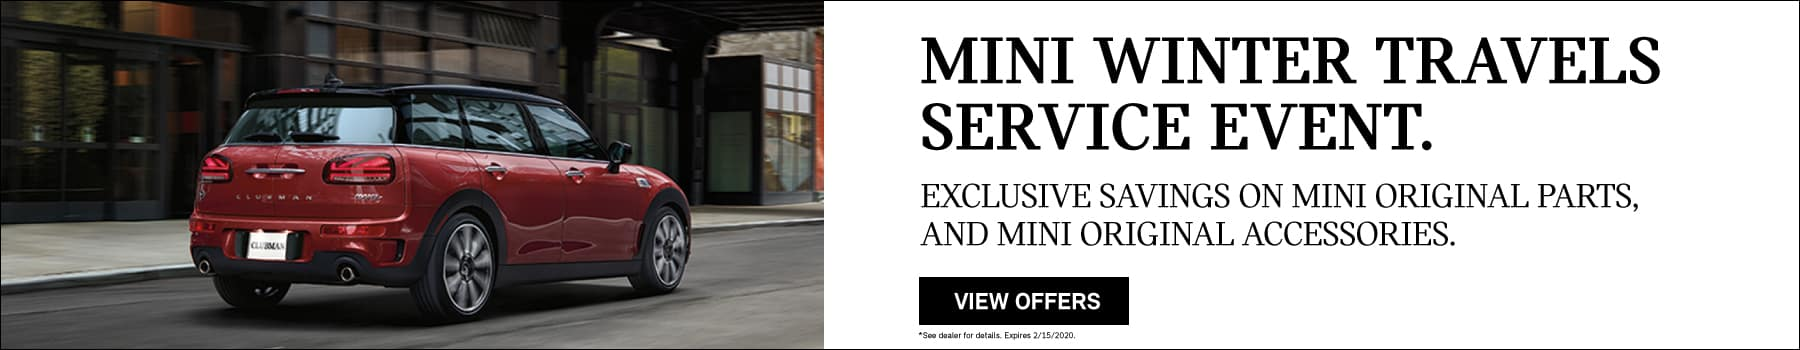 THE MINI WINTER TRAVELS SERVICE EVENT. EXCLUSIVE SAVINGS: DECEMBER 1 – FEBRUARY 15, 2020